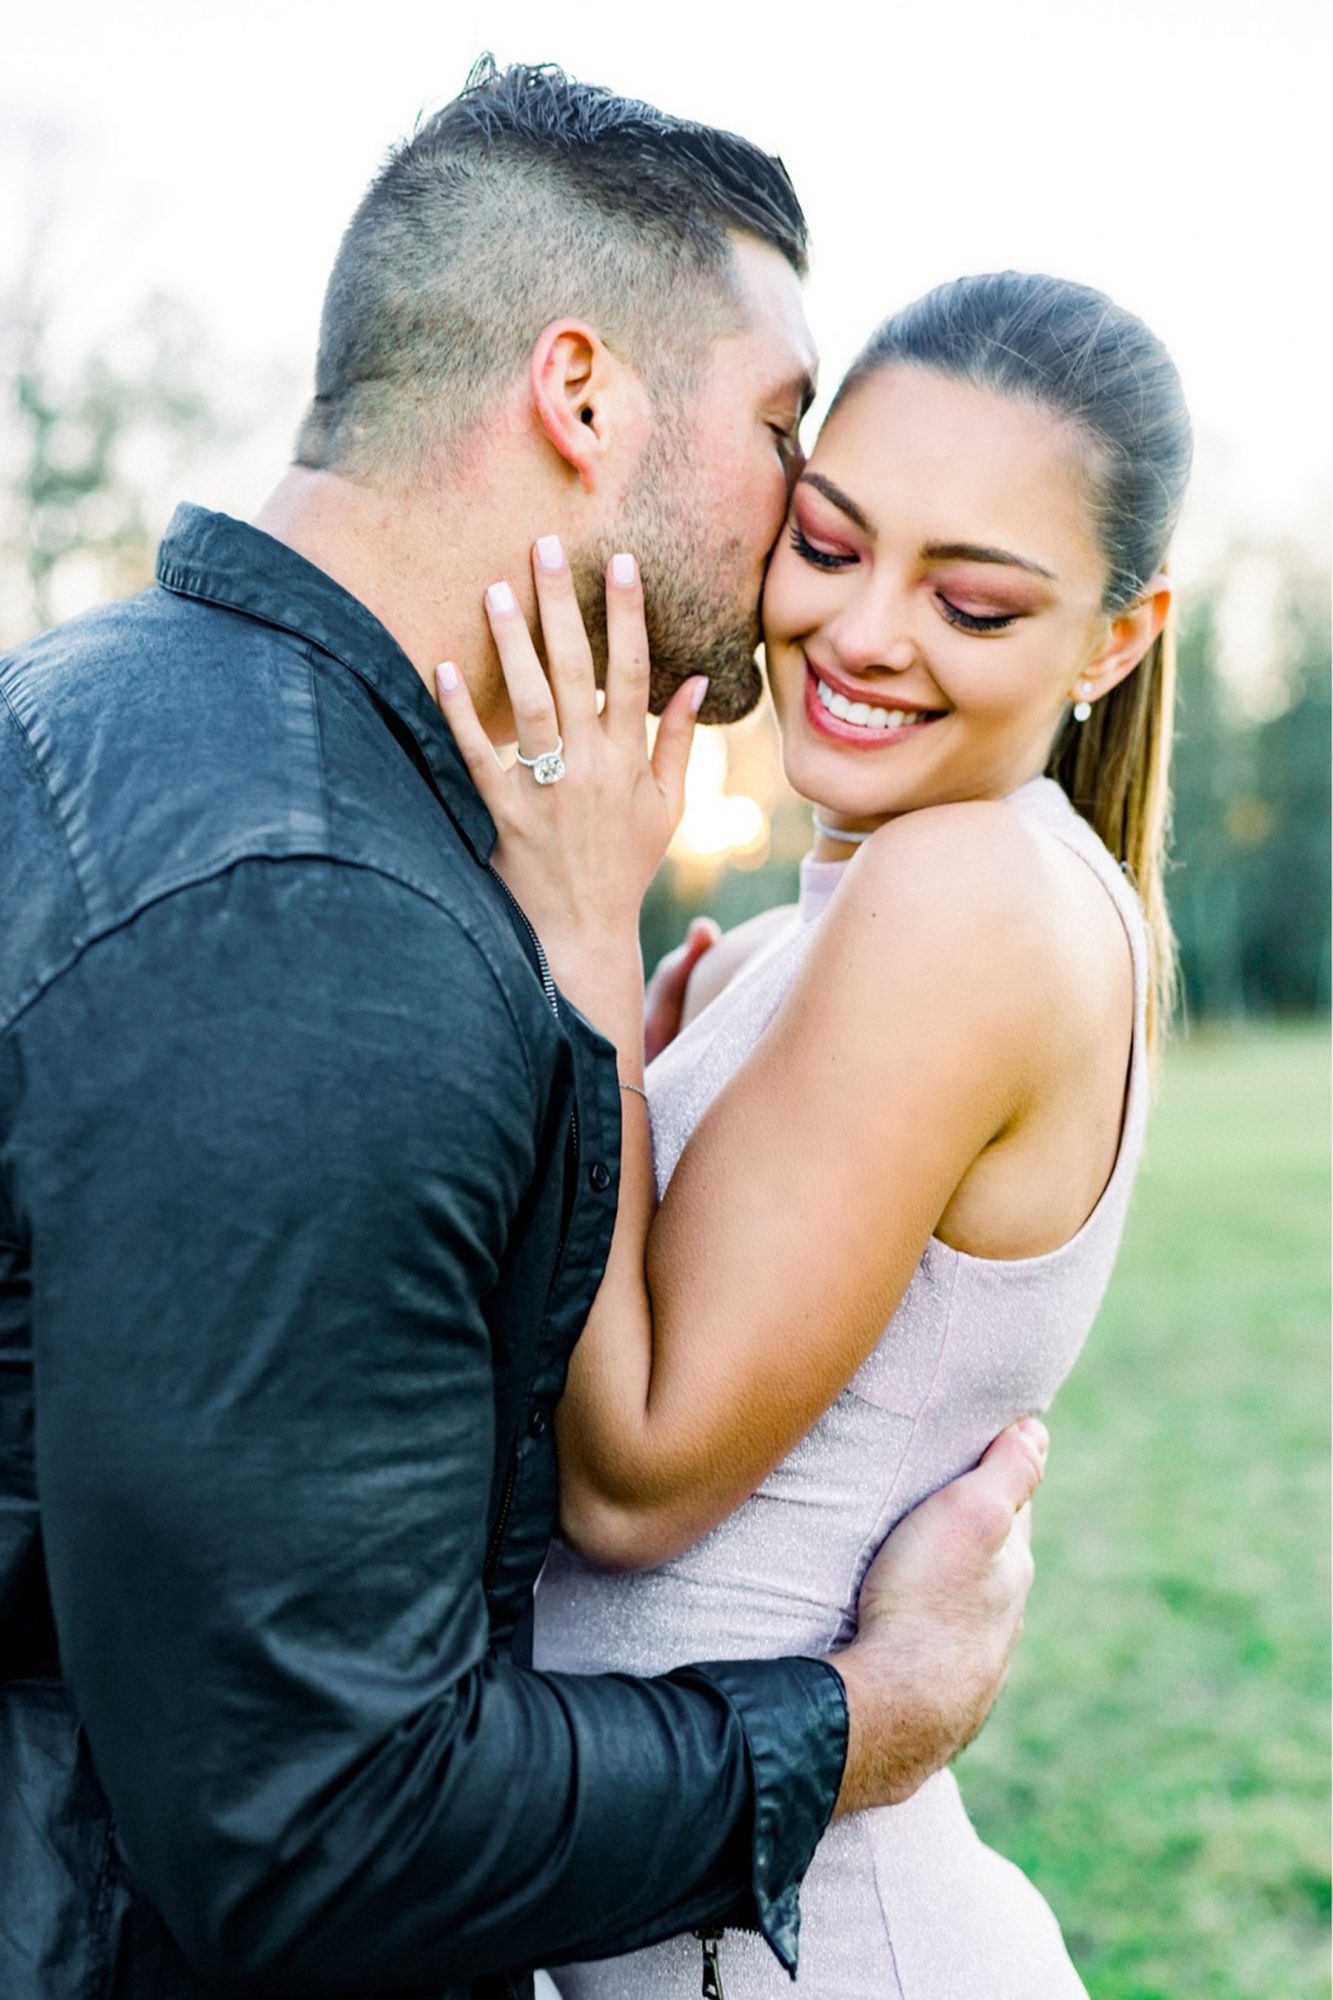 Tim Tebow Is Engaged to Former Miss Universe Demi-Leigh Nel-Peters tebow3